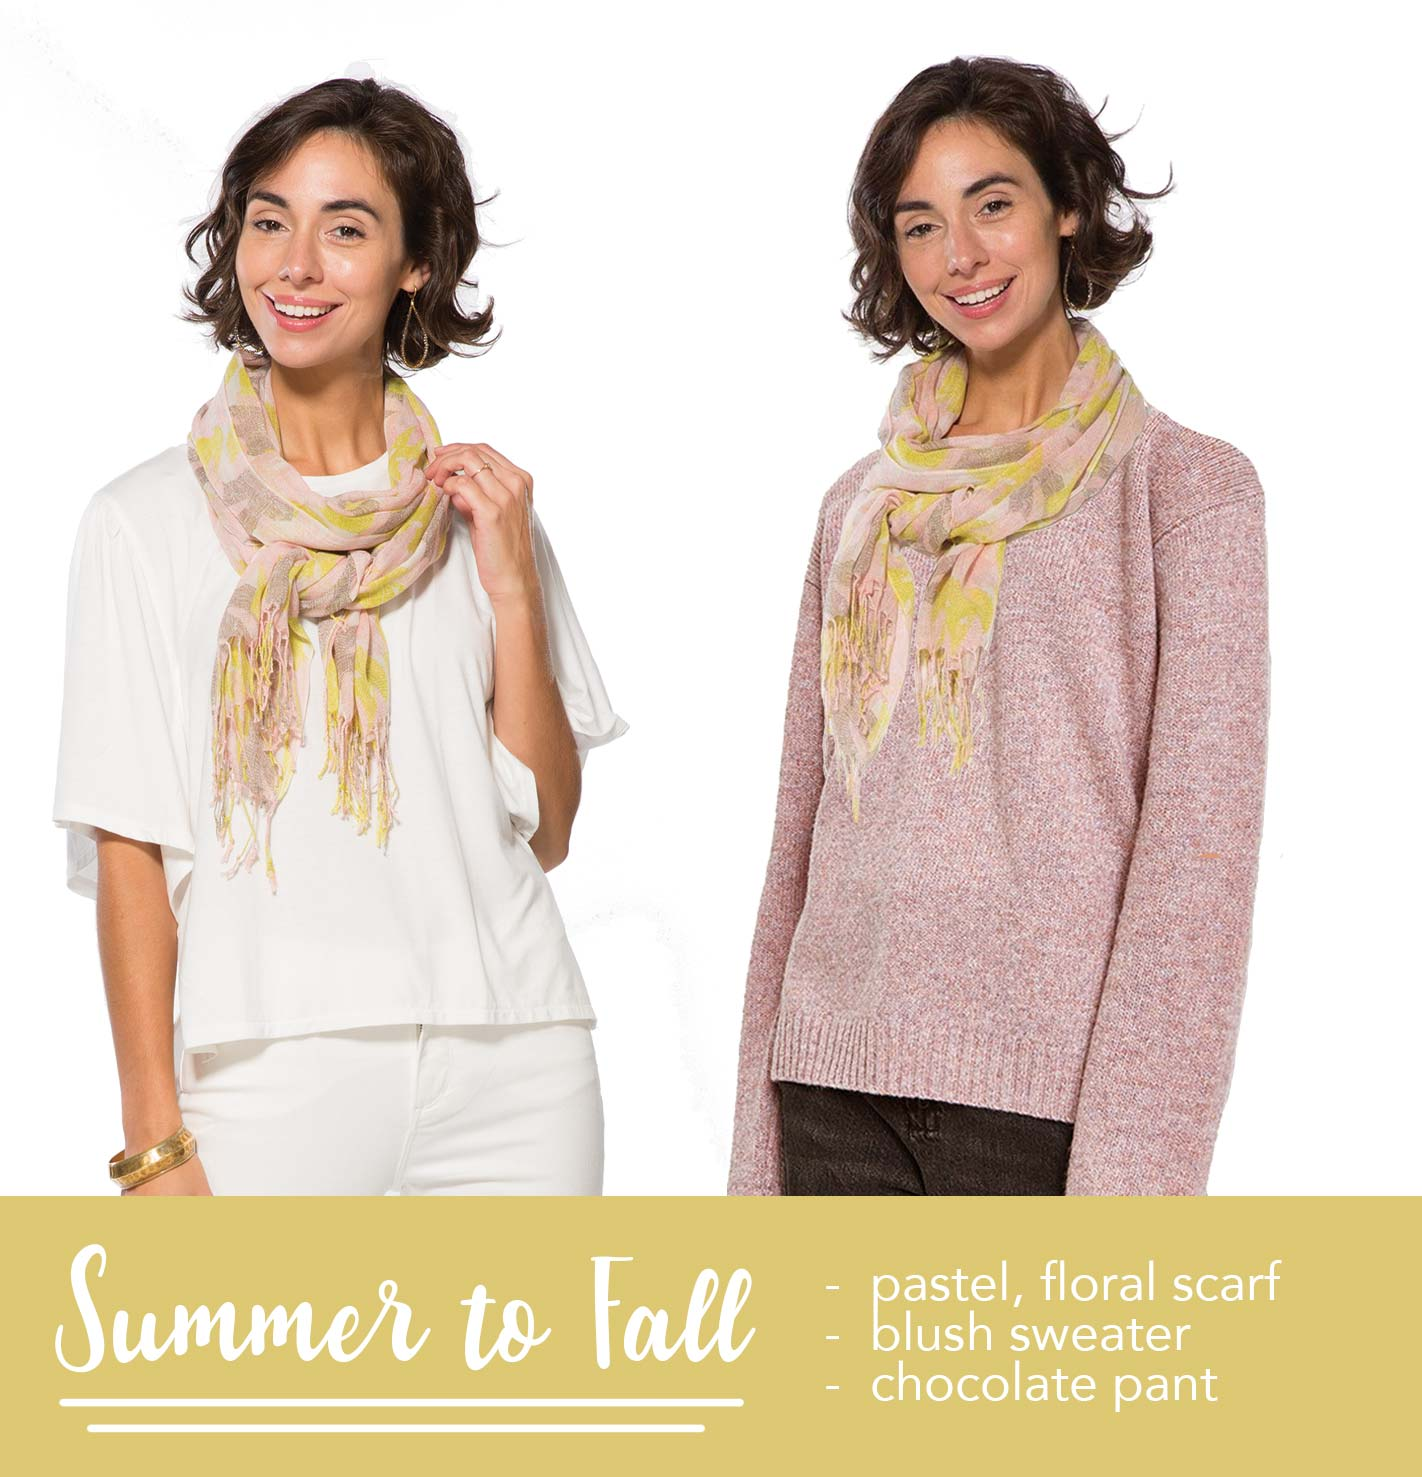 woman wearing a floral yellow scarf in a spring outfit vs. a fall outfit